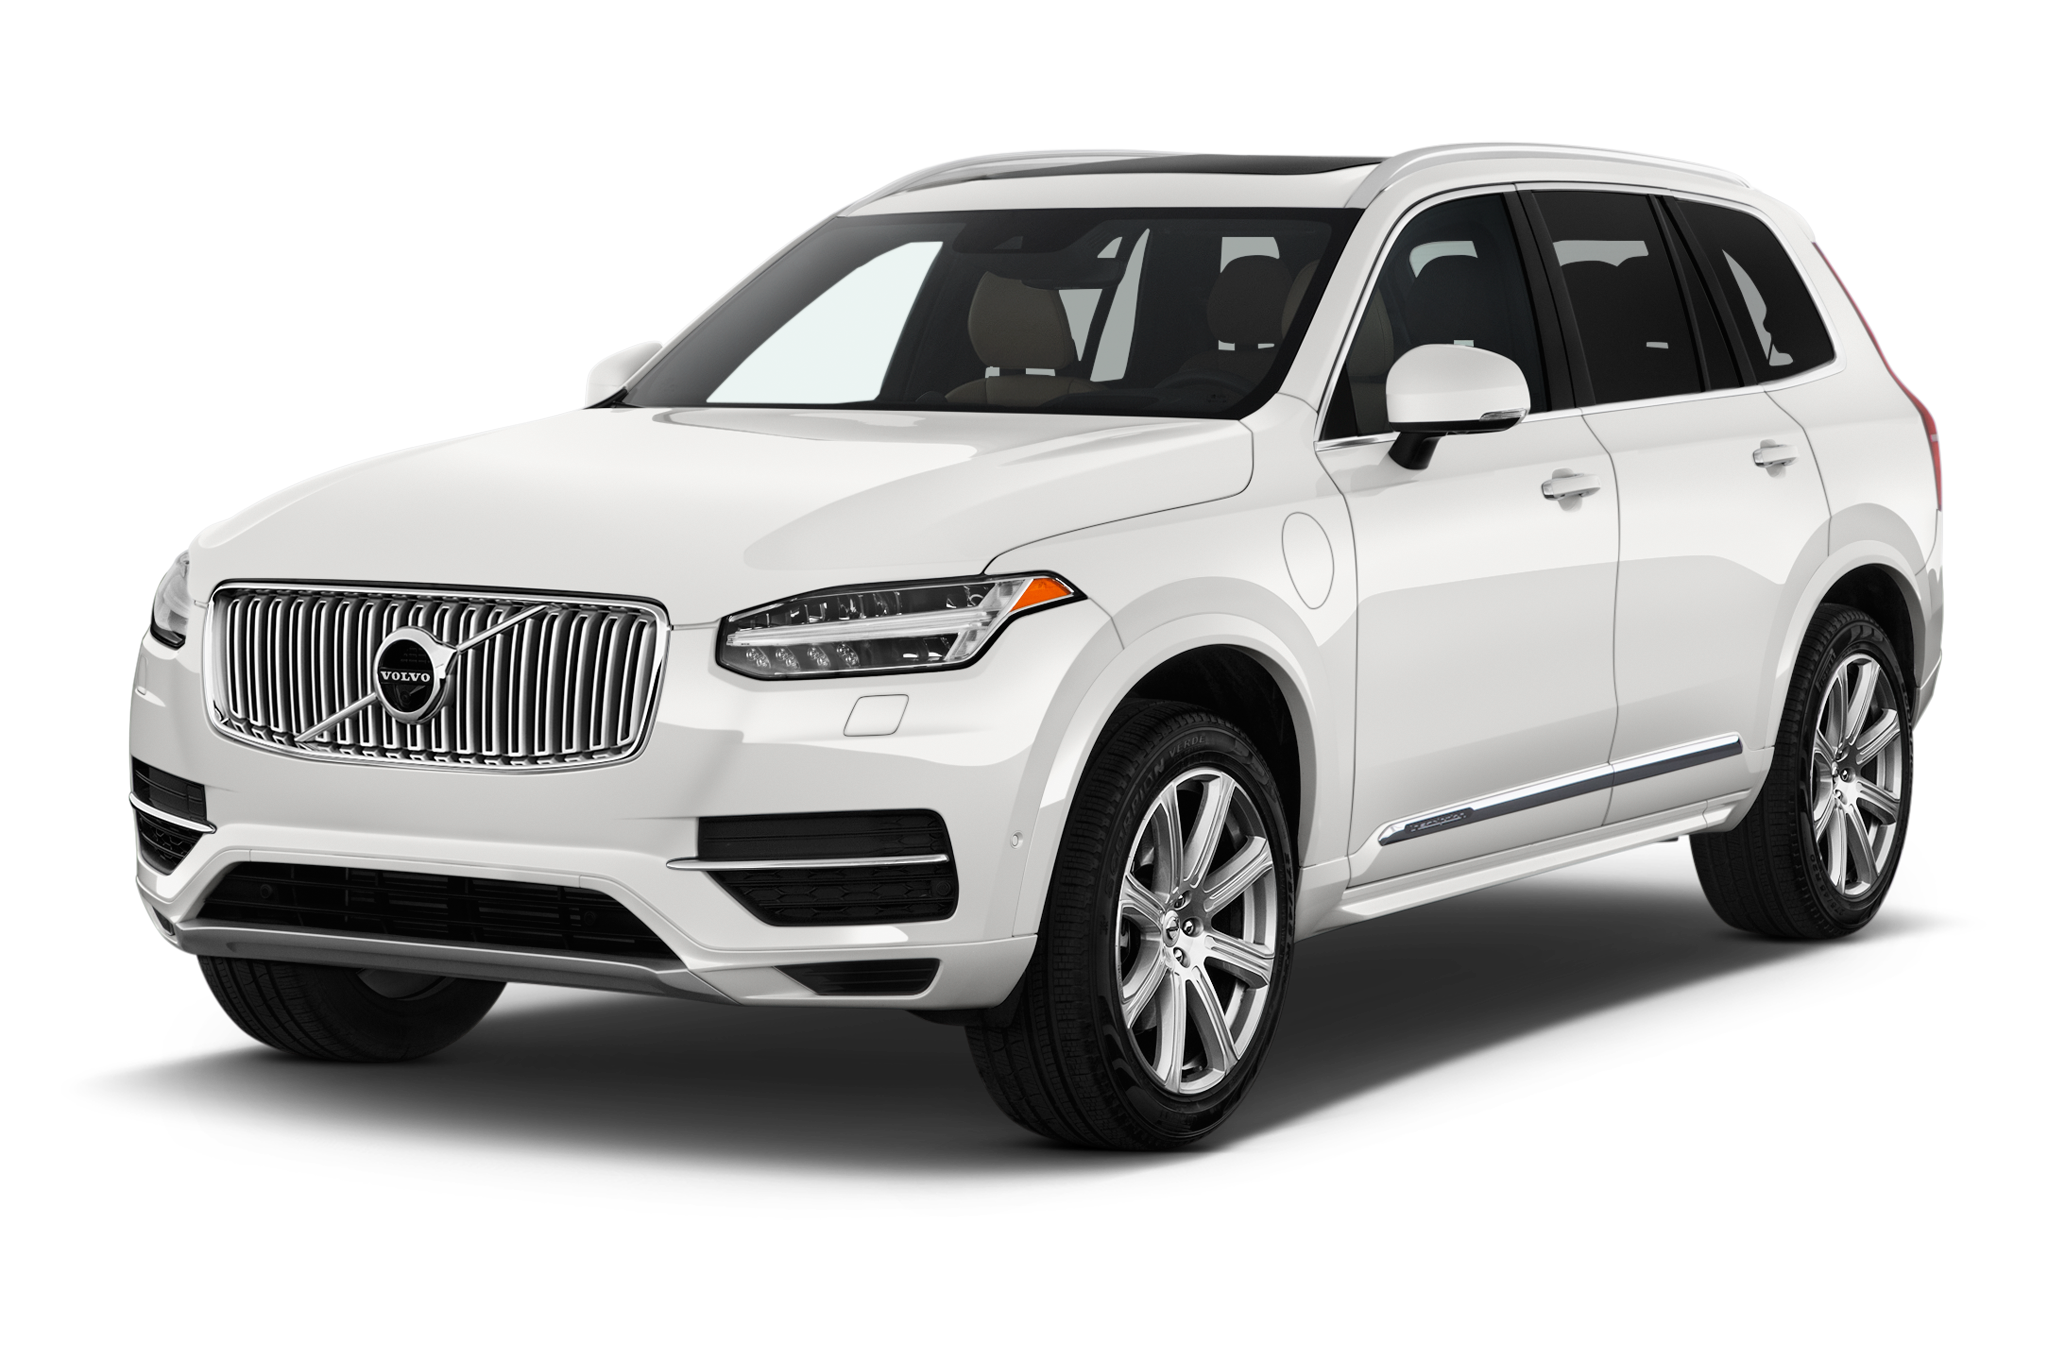 2018 volvo xc90 overview msn autos. Black Bedroom Furniture Sets. Home Design Ideas